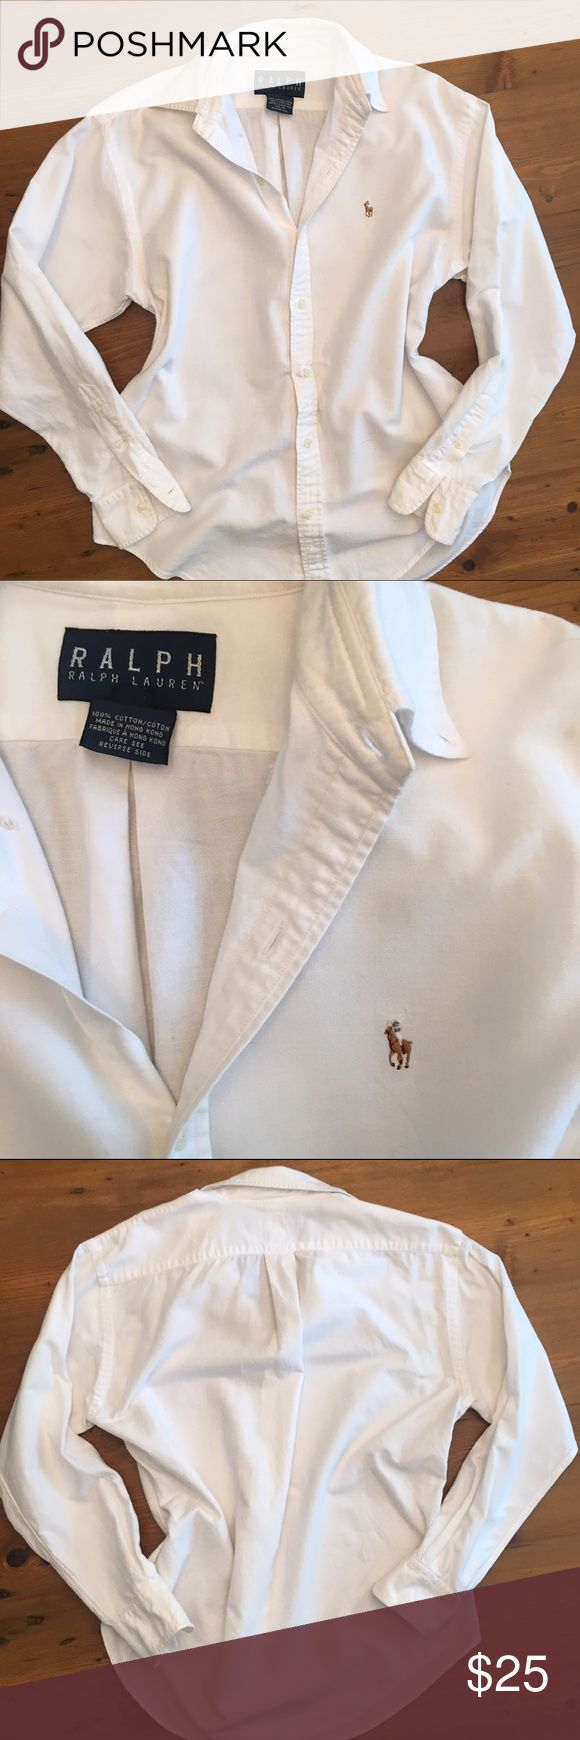 Women's Ralph Lauren Classic White Button Up Shirt Women's Ralph Lauren Classic White Button Up Shirt. Size Small 4-6. No stains great condition. Bundle 2 or more items and get 20% off! Ralph Lauren Tops Button Down Shirts